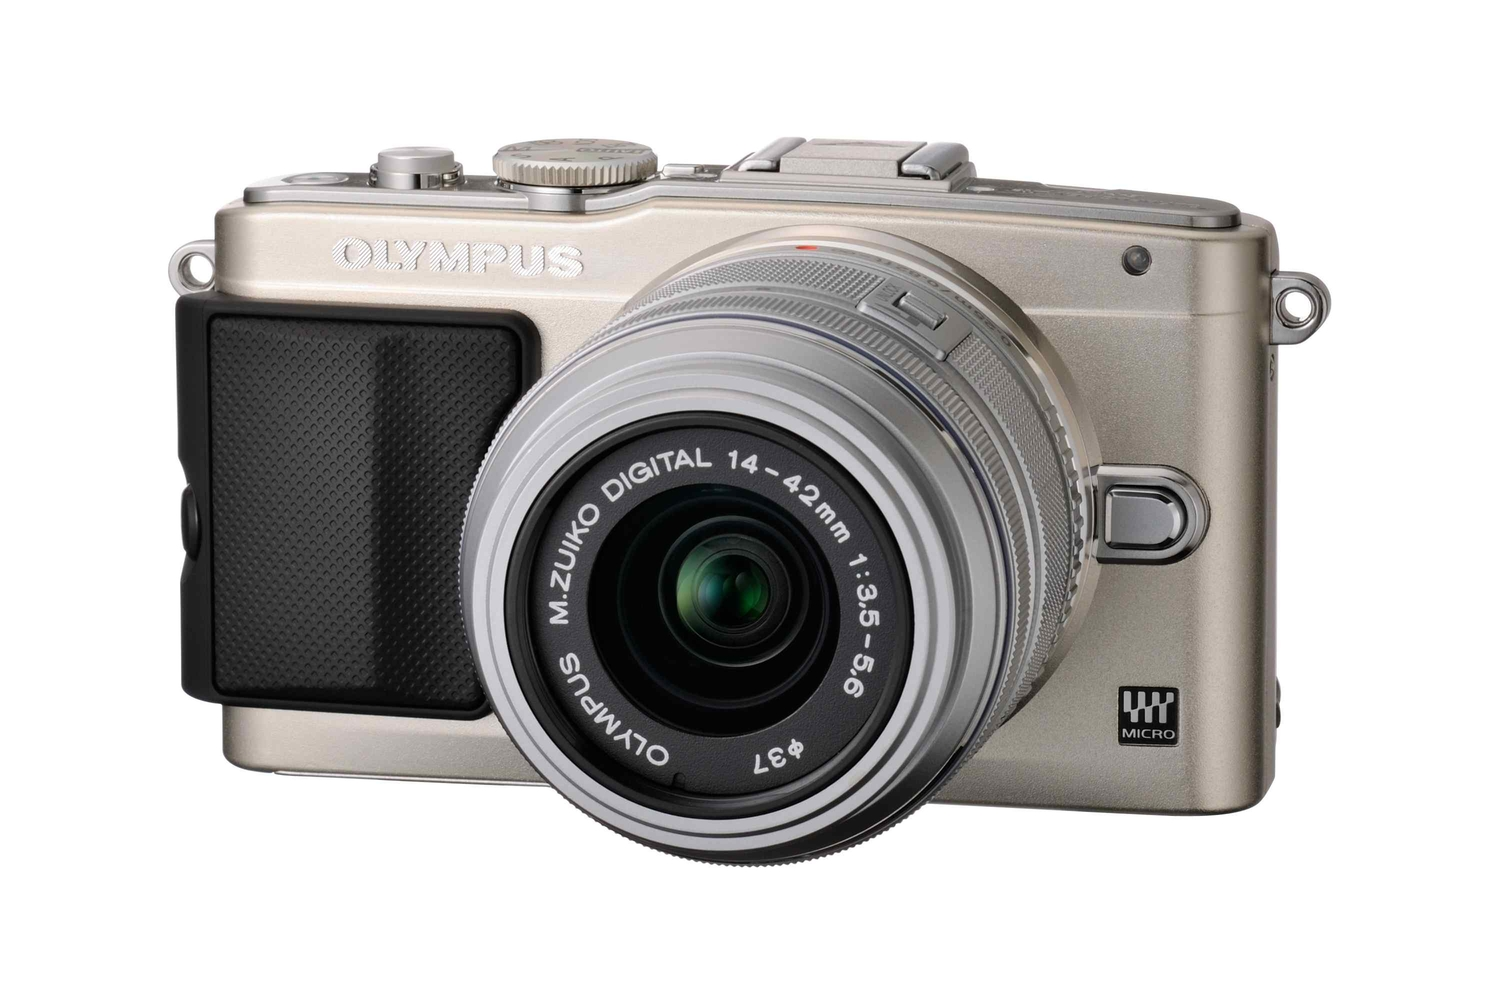 olympus pen lite e pl5 camera preview review olympus beefs up its pen lite interchangeable. Black Bedroom Furniture Sets. Home Design Ideas